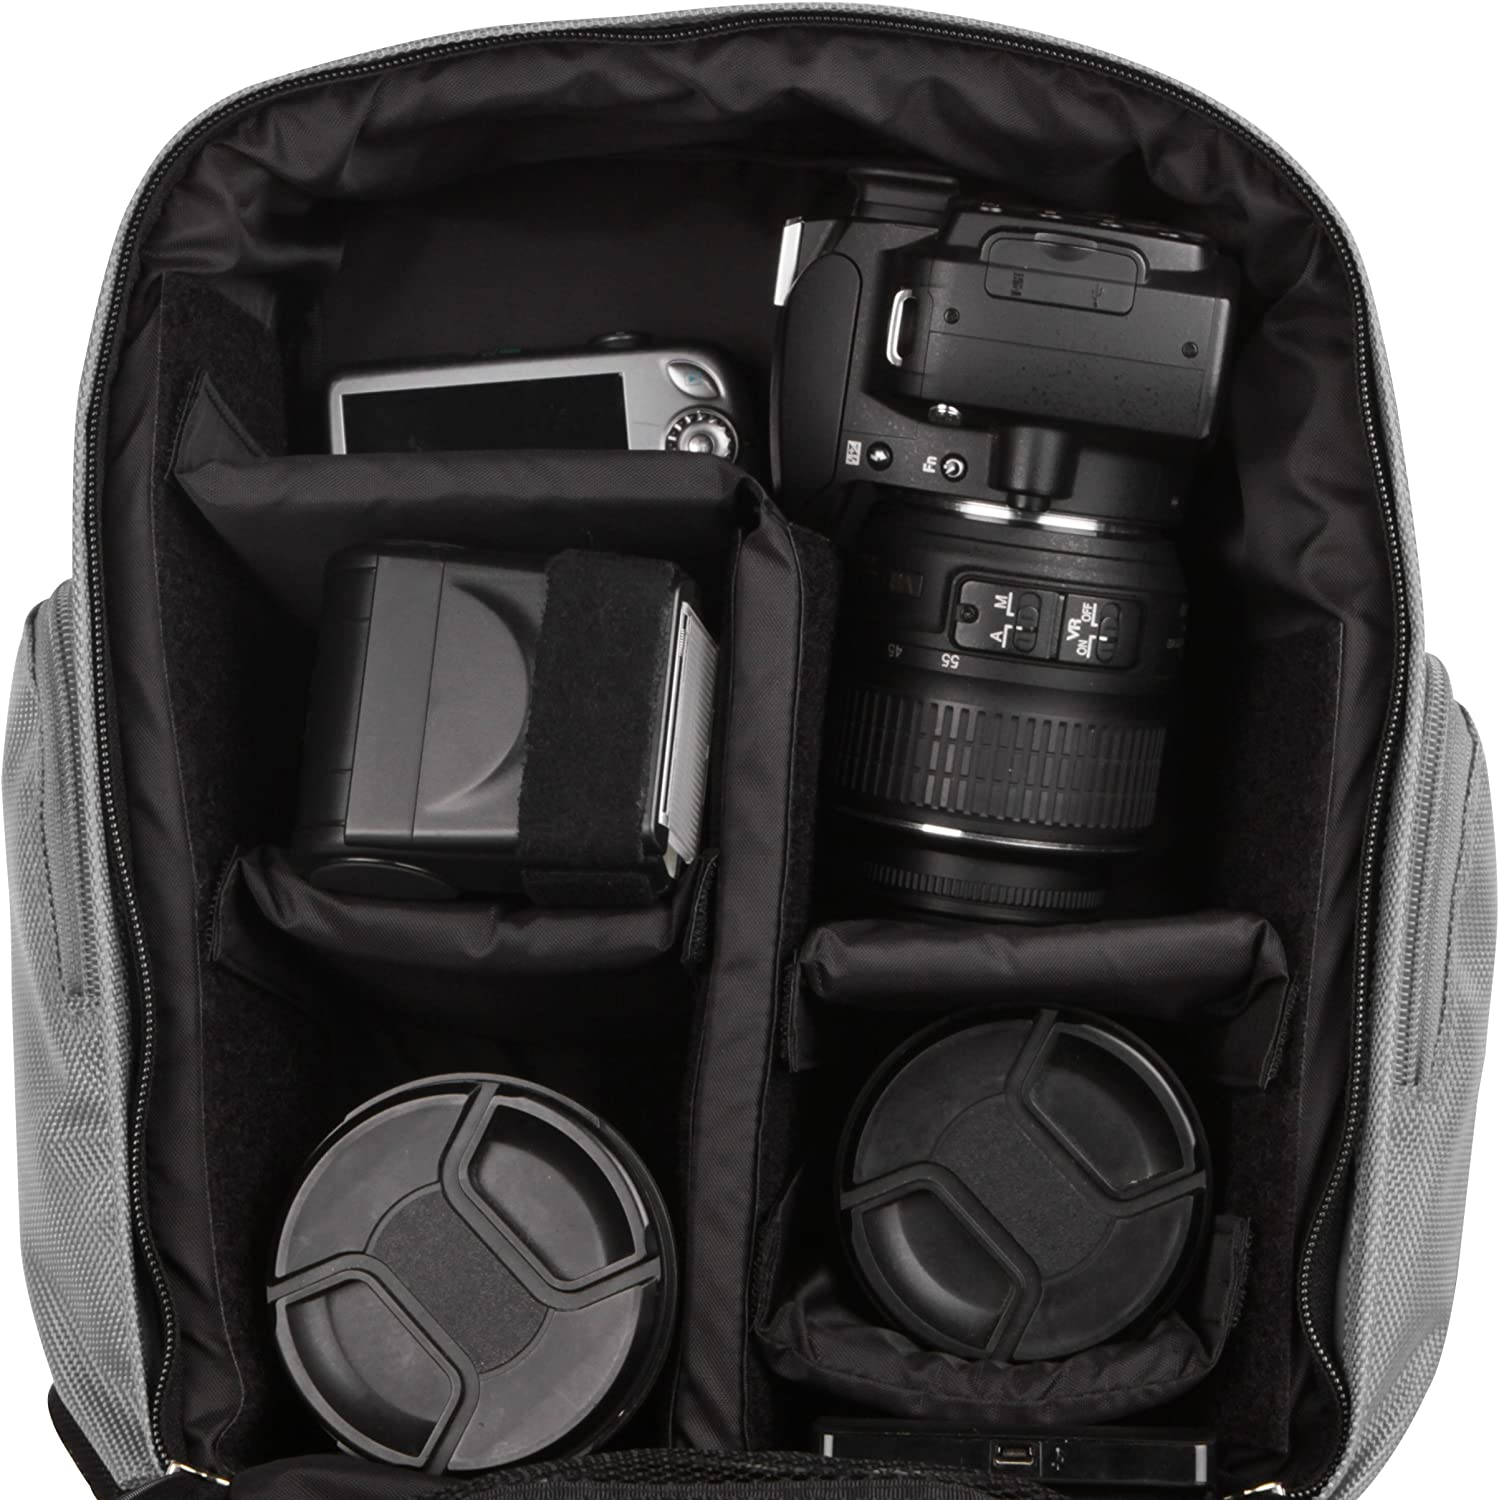 DSC RX1R Black and Gray DSC RX1 Digital Cameras and Mini Tripod and Screen Protector VanGoddy Sparta Travel Backpack for Sony Cyber Shot DSC RX100 II